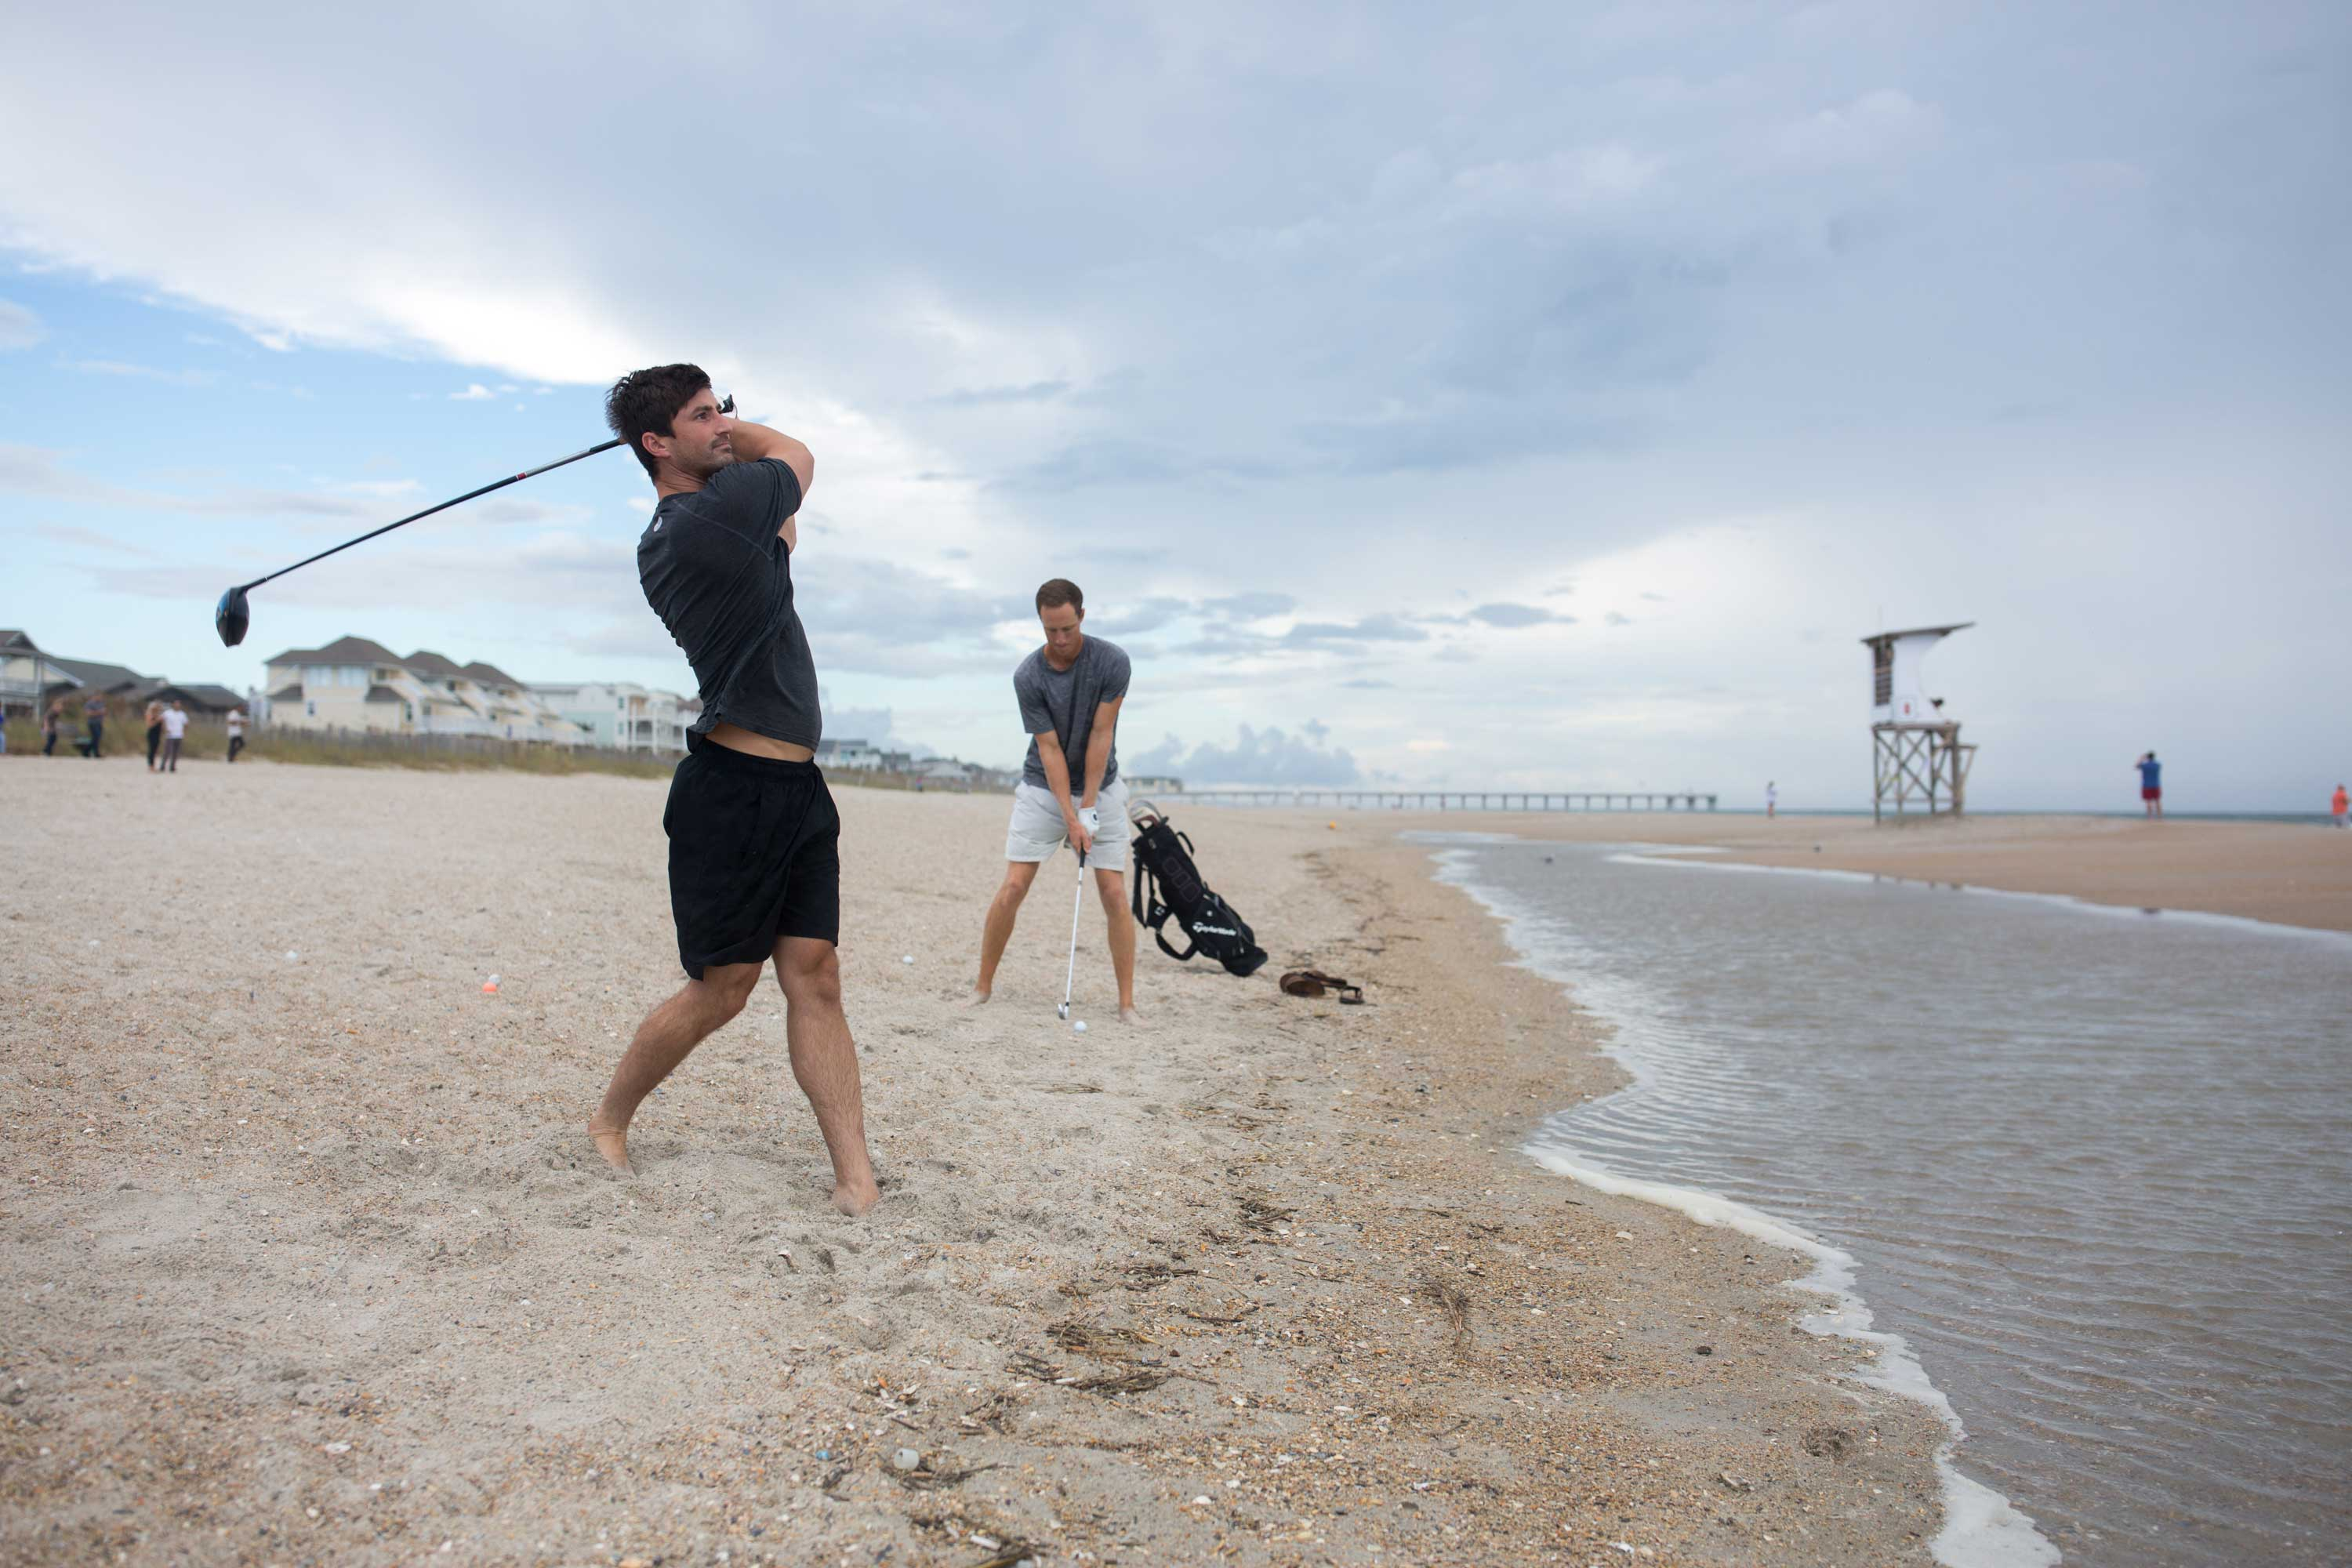 "<div class=""meta image-caption""><div class=""origin-logo origin-image none""><span>none</span></div><span class=""caption-text"">Matt Jones tees off while his friend Jacob Whitehead looks on at Wrightsville Beach, N.C. on September 11, 2018, as they plan to ride out Hurricane Florence. (LOGAN CYRUS/AFP/Getty Images)</span></div>"